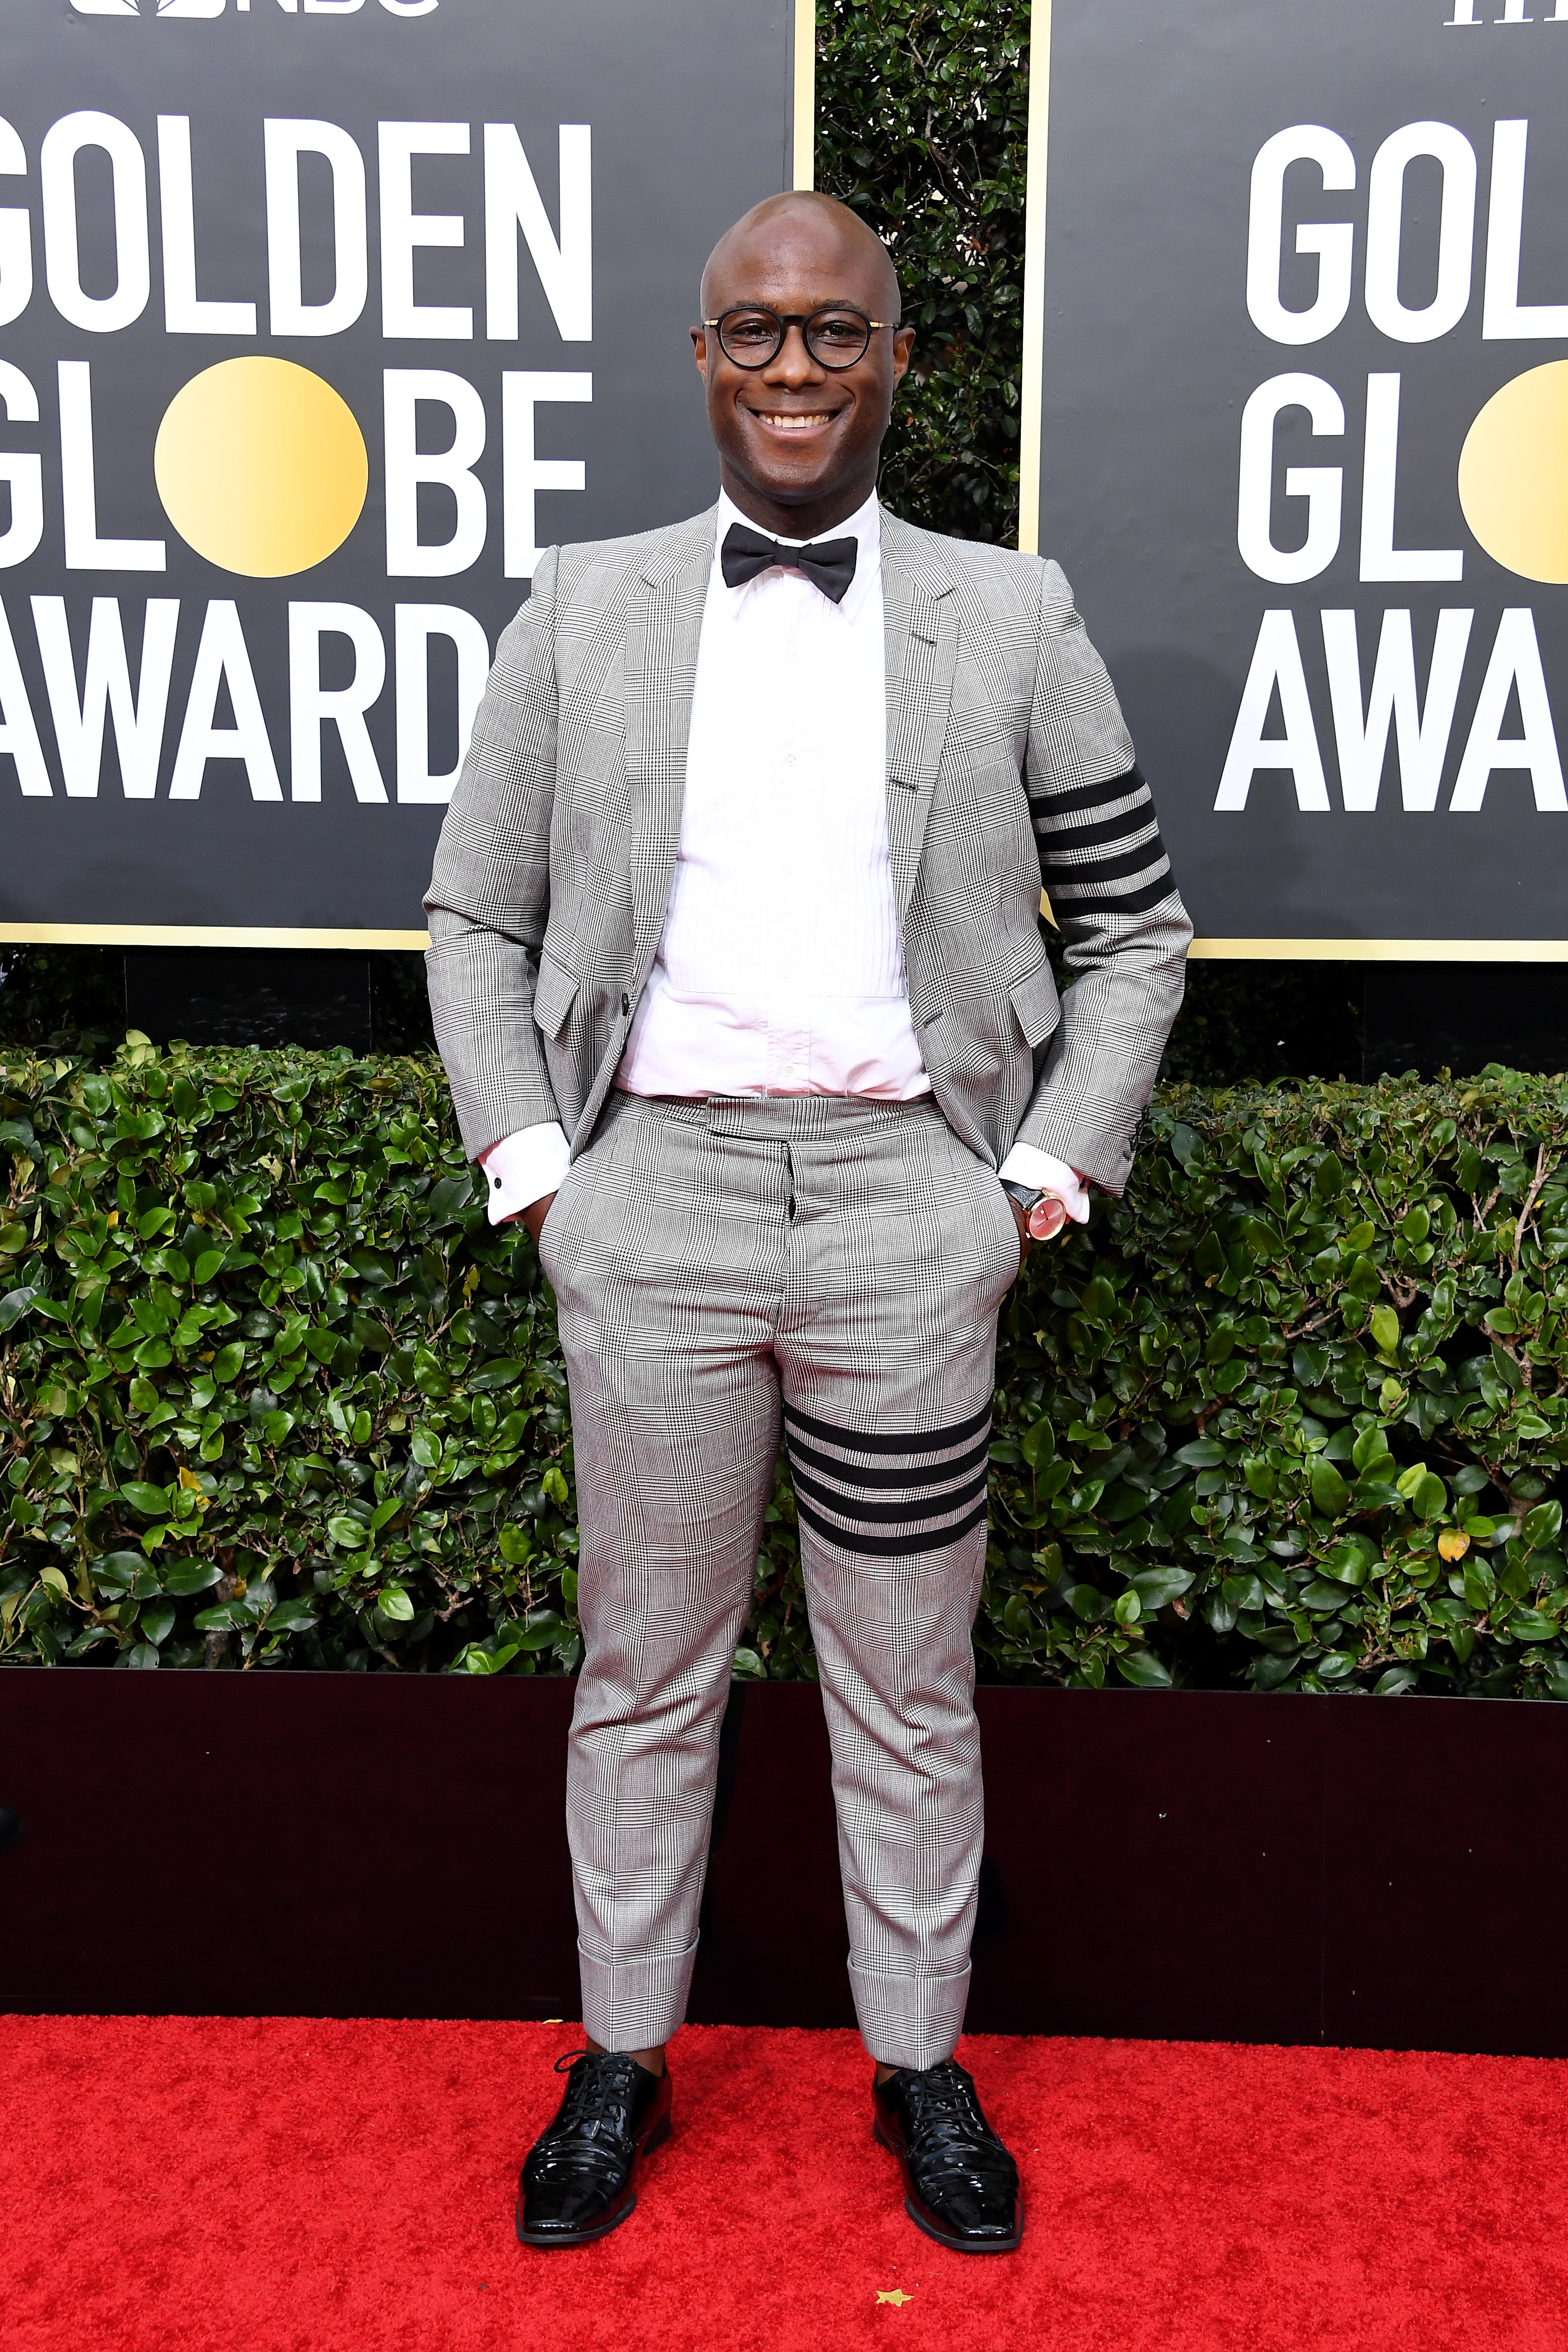 BEVERLY HILLS, CALIFORNIA - JANUARY 05: Barry Jenkins attends the 77th Annual Golden Globe Awards at The Beverly Hilton Hotel on January 05, 2020 in Beverly Hills, California. (Photo by Steve Granitz/WireImage)